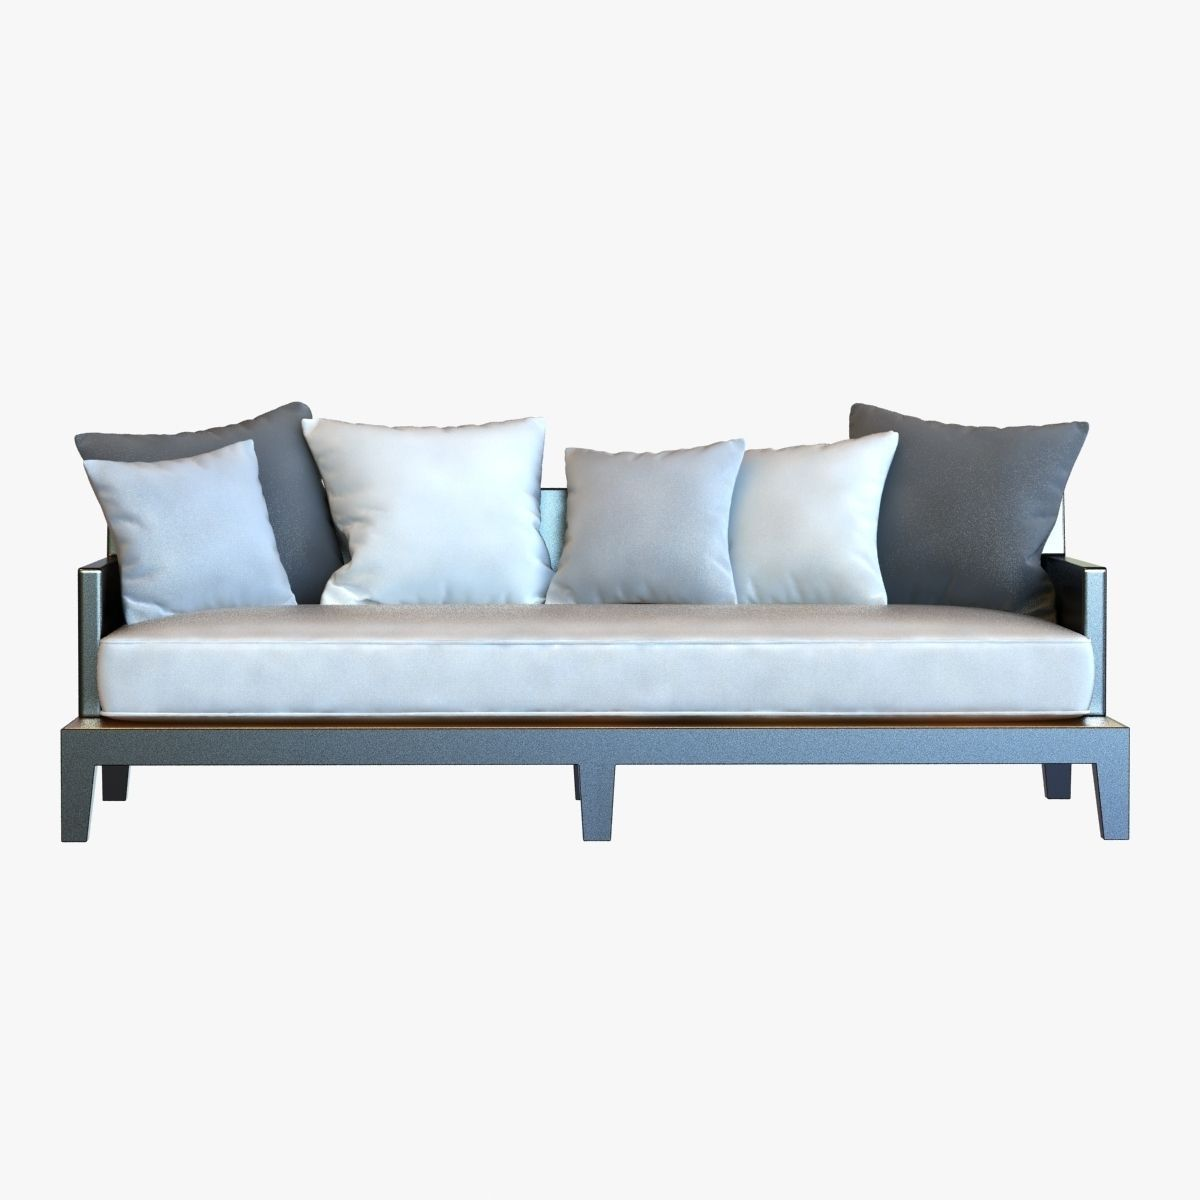 holly hunt sofa cost leather brands christian liaigre for opium 3d model max